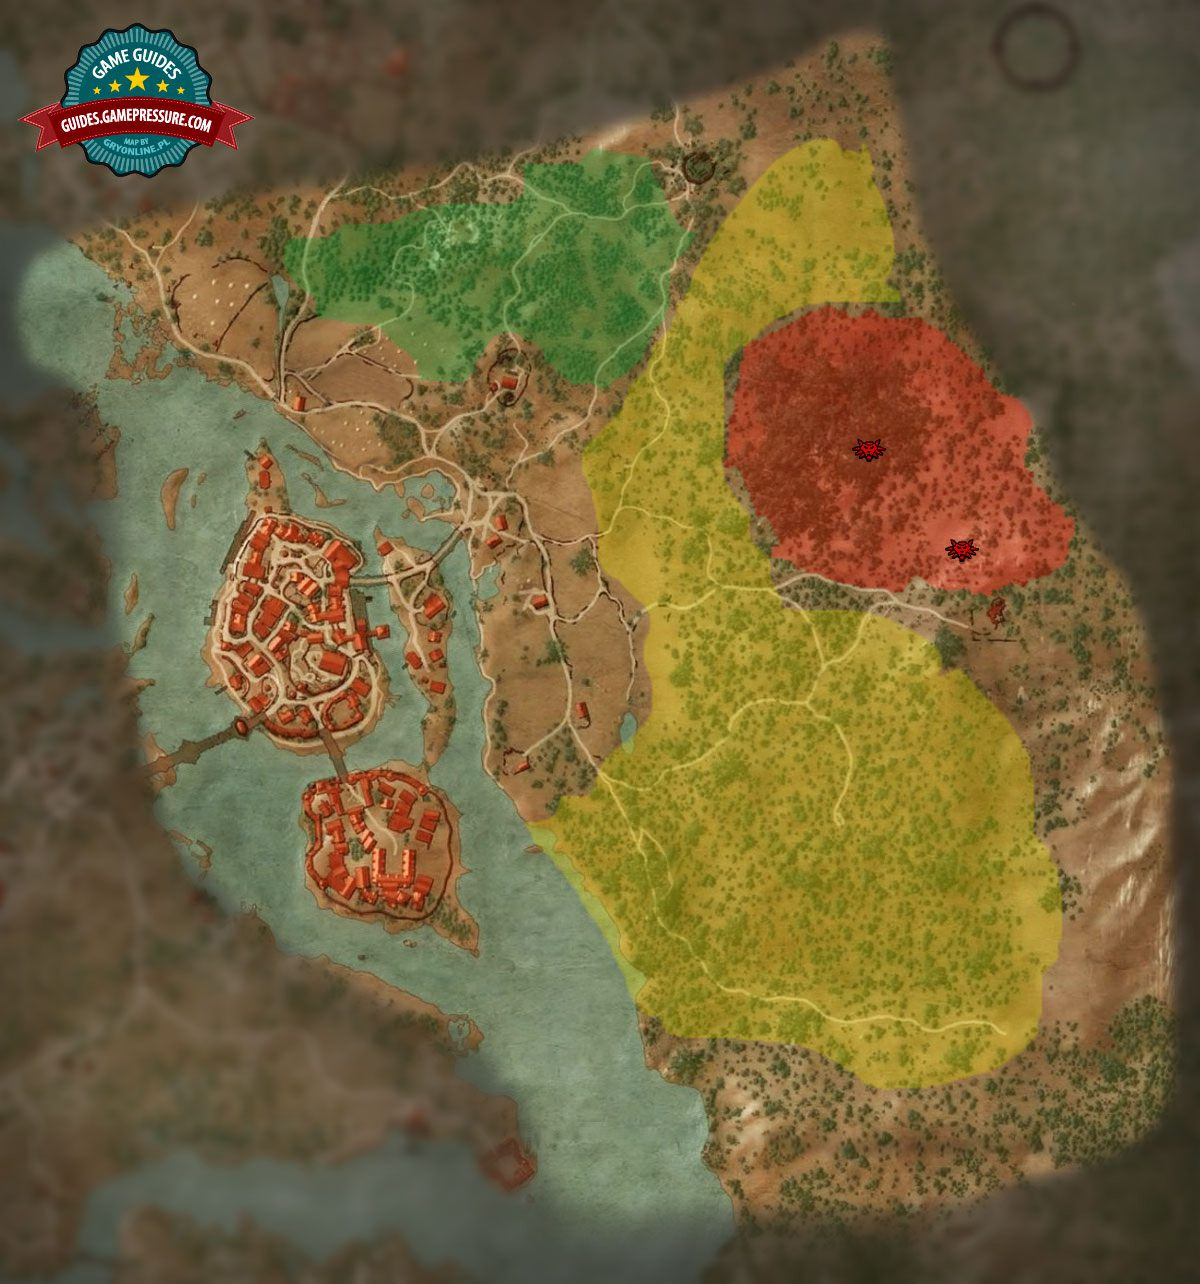 Map of enemies in oxenfurt the witcher 3 wild hunt game guide witcher 3 m8 oxenfurt enemies gumiabroncs Image collections